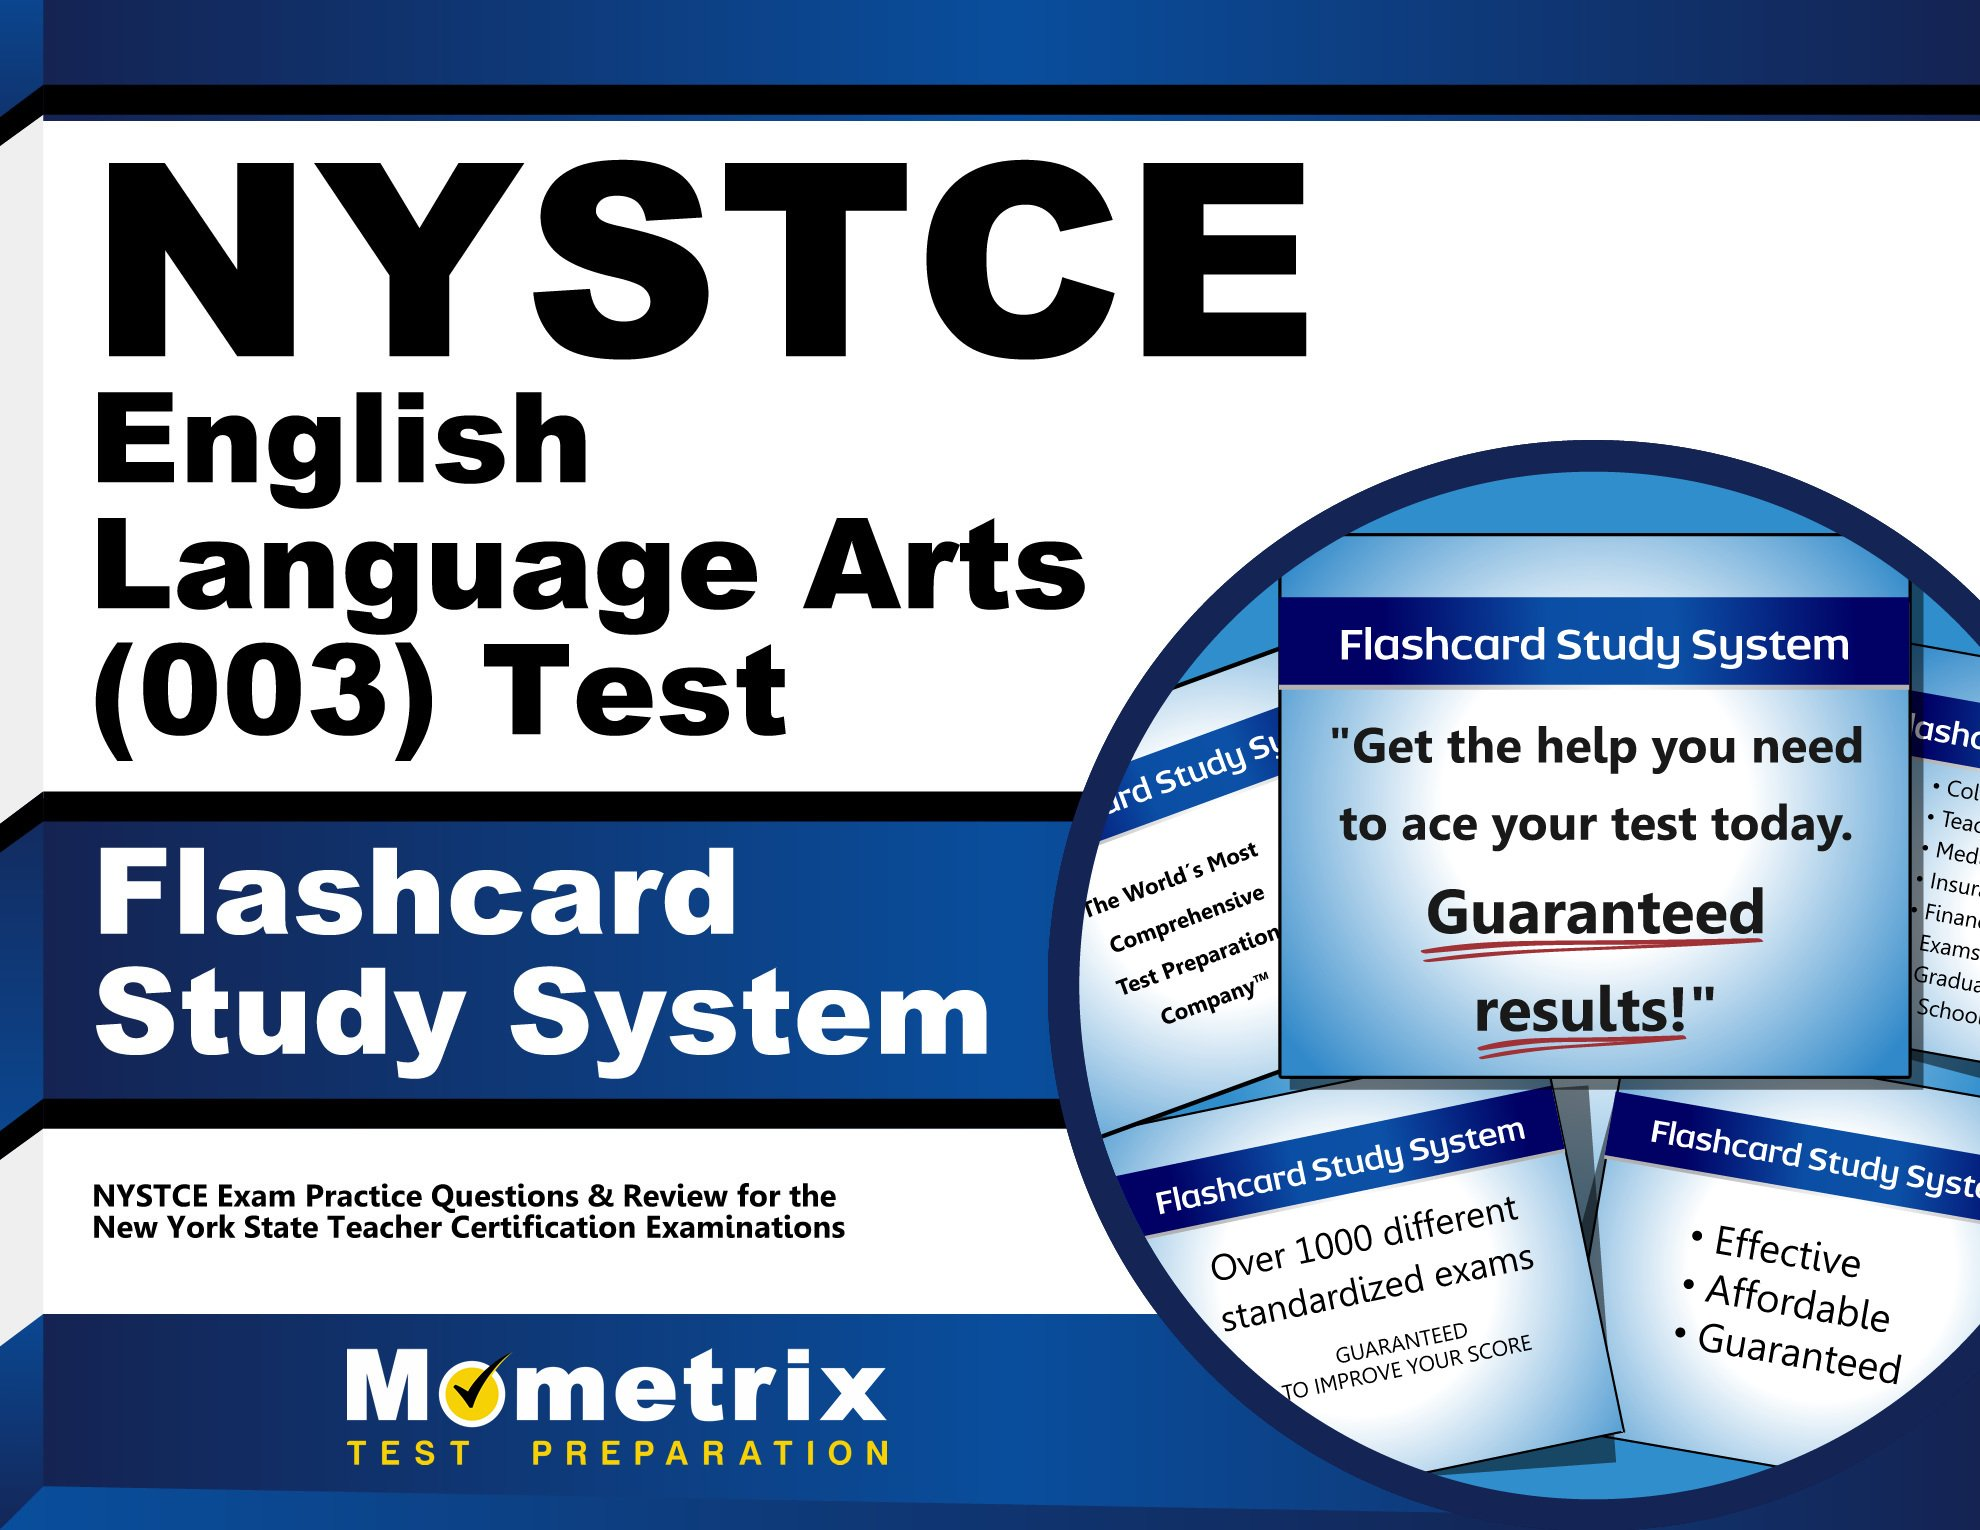 NYSTCE English Language Arts (003) Test Flashcard Study System: NYSTCE Exam Practice Questions & Review for the New York State Teacher Certification Examinations (Cards) by Mometrix Media LLC